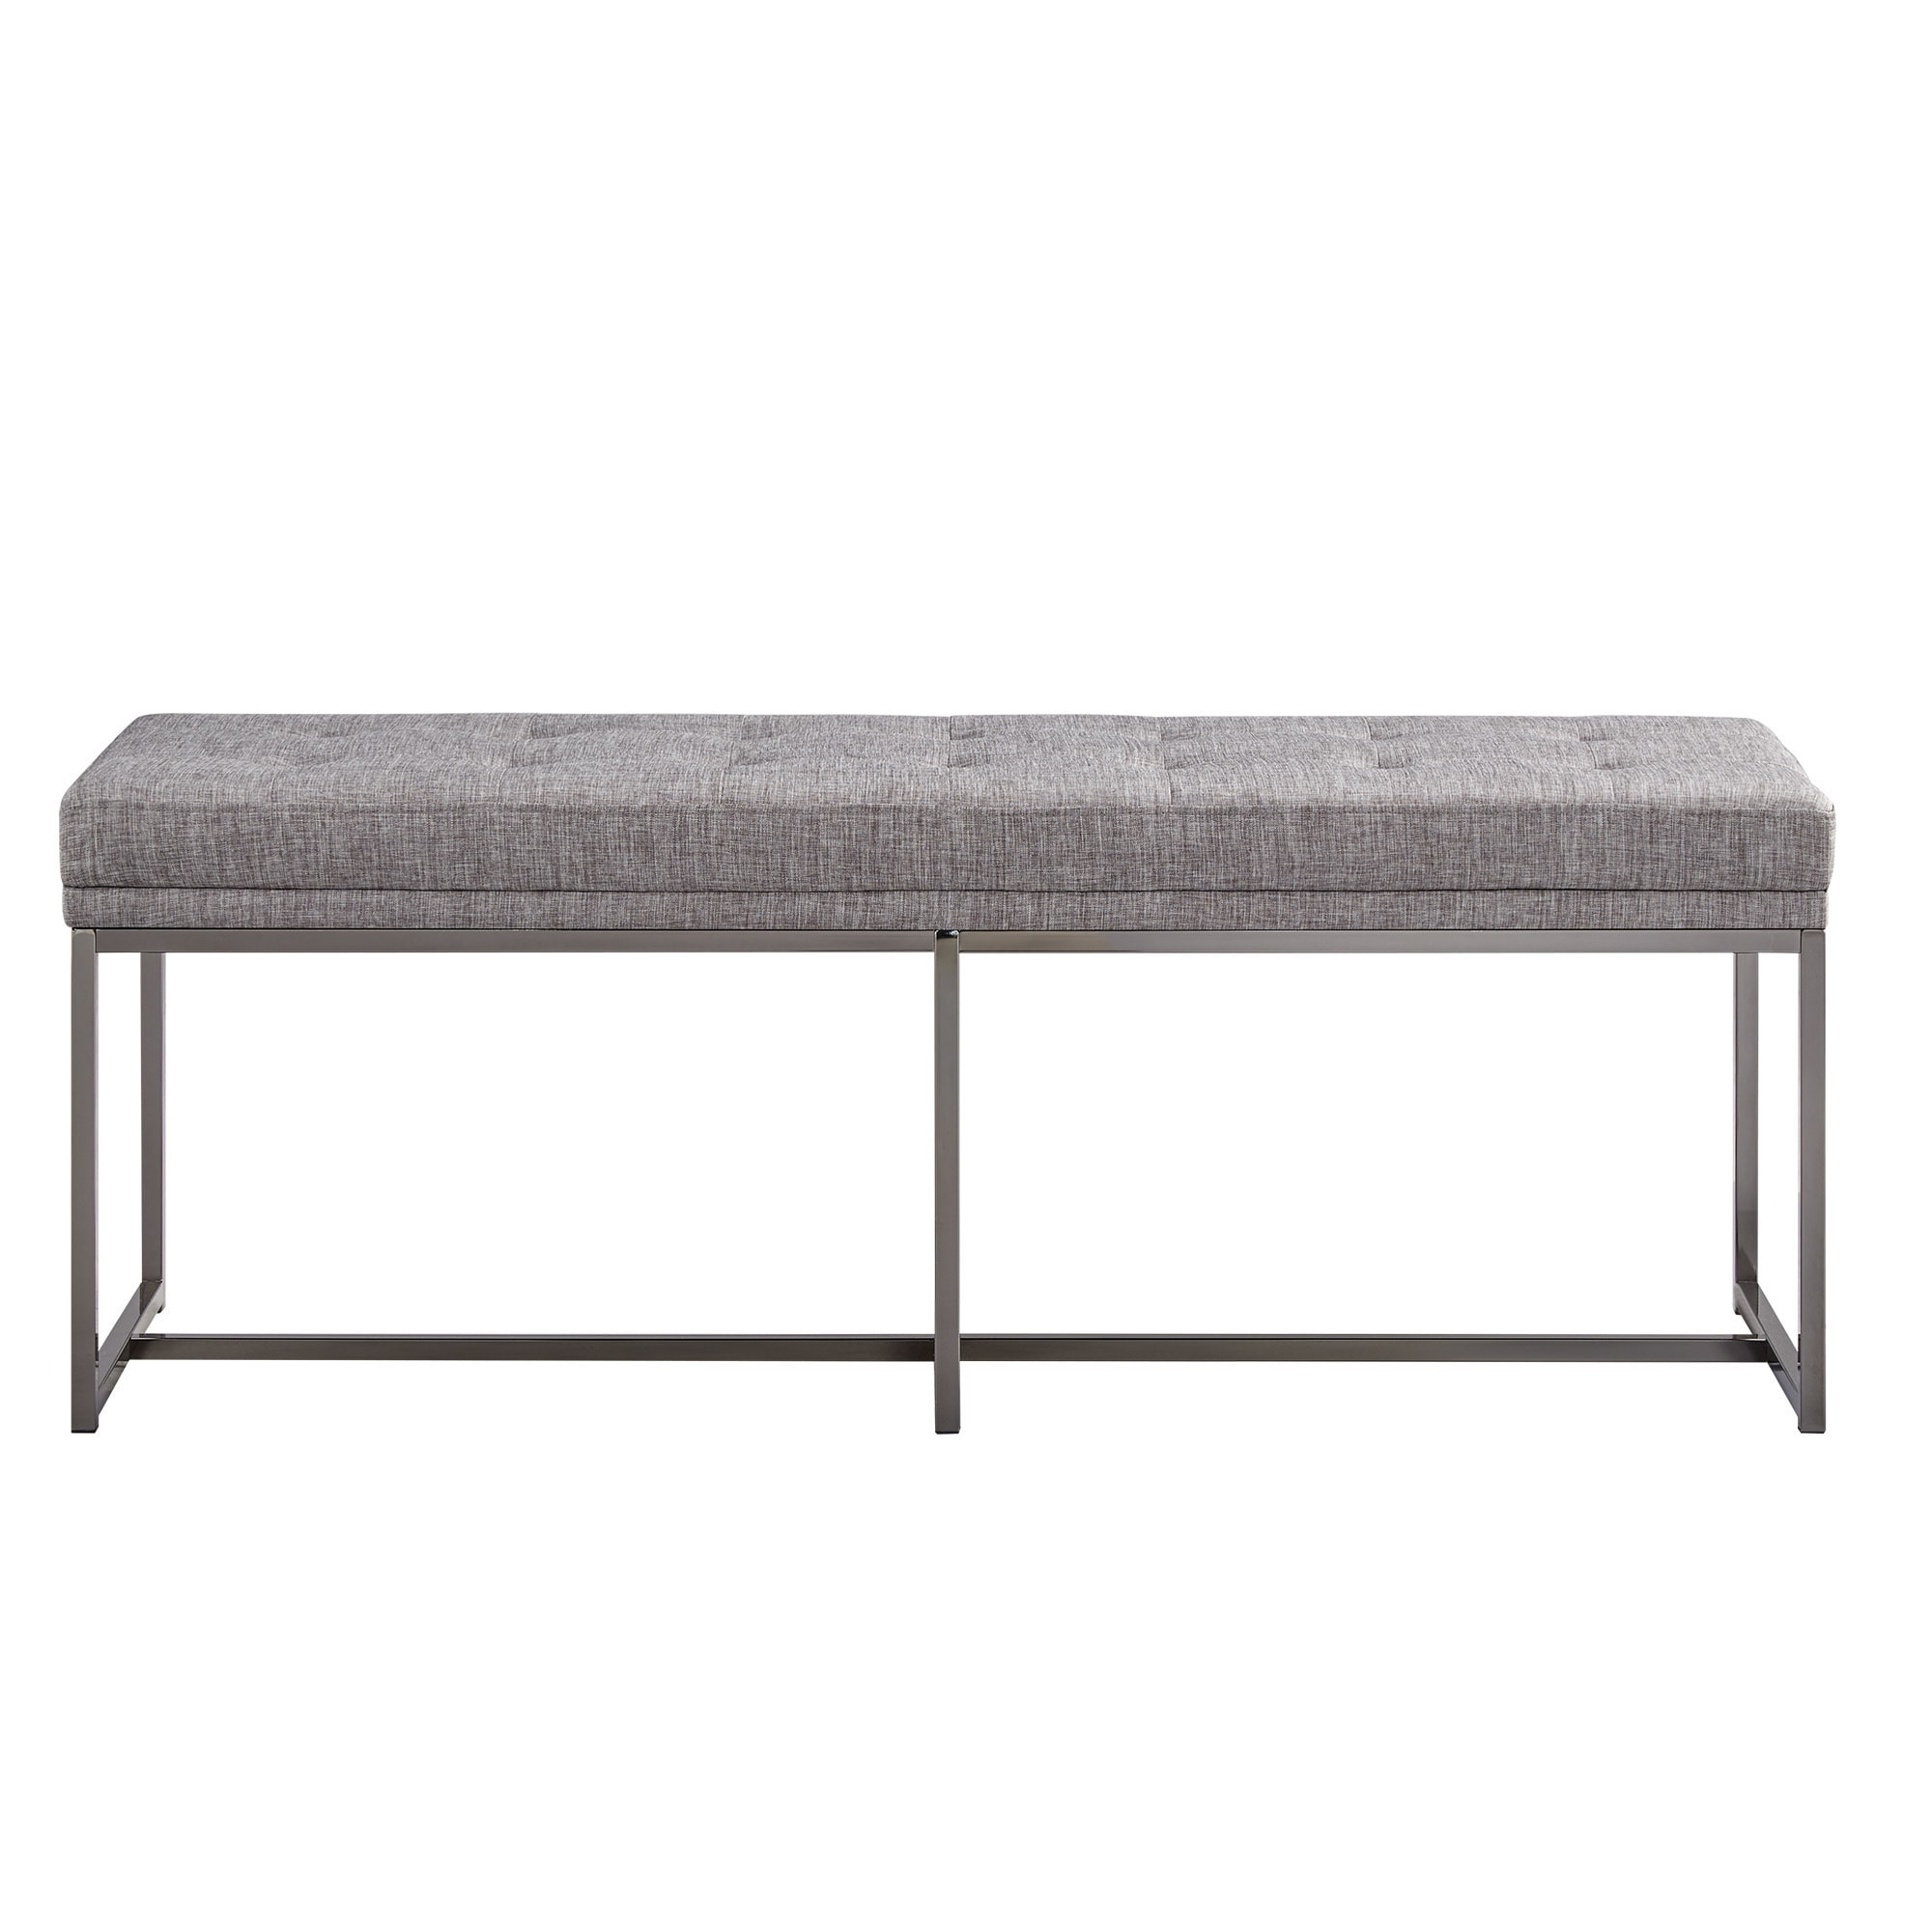 Bryn Black Nickel Base Bench by iNSPIRE Q Bold - Free Shipping Today -  Overstock.com - 23317487